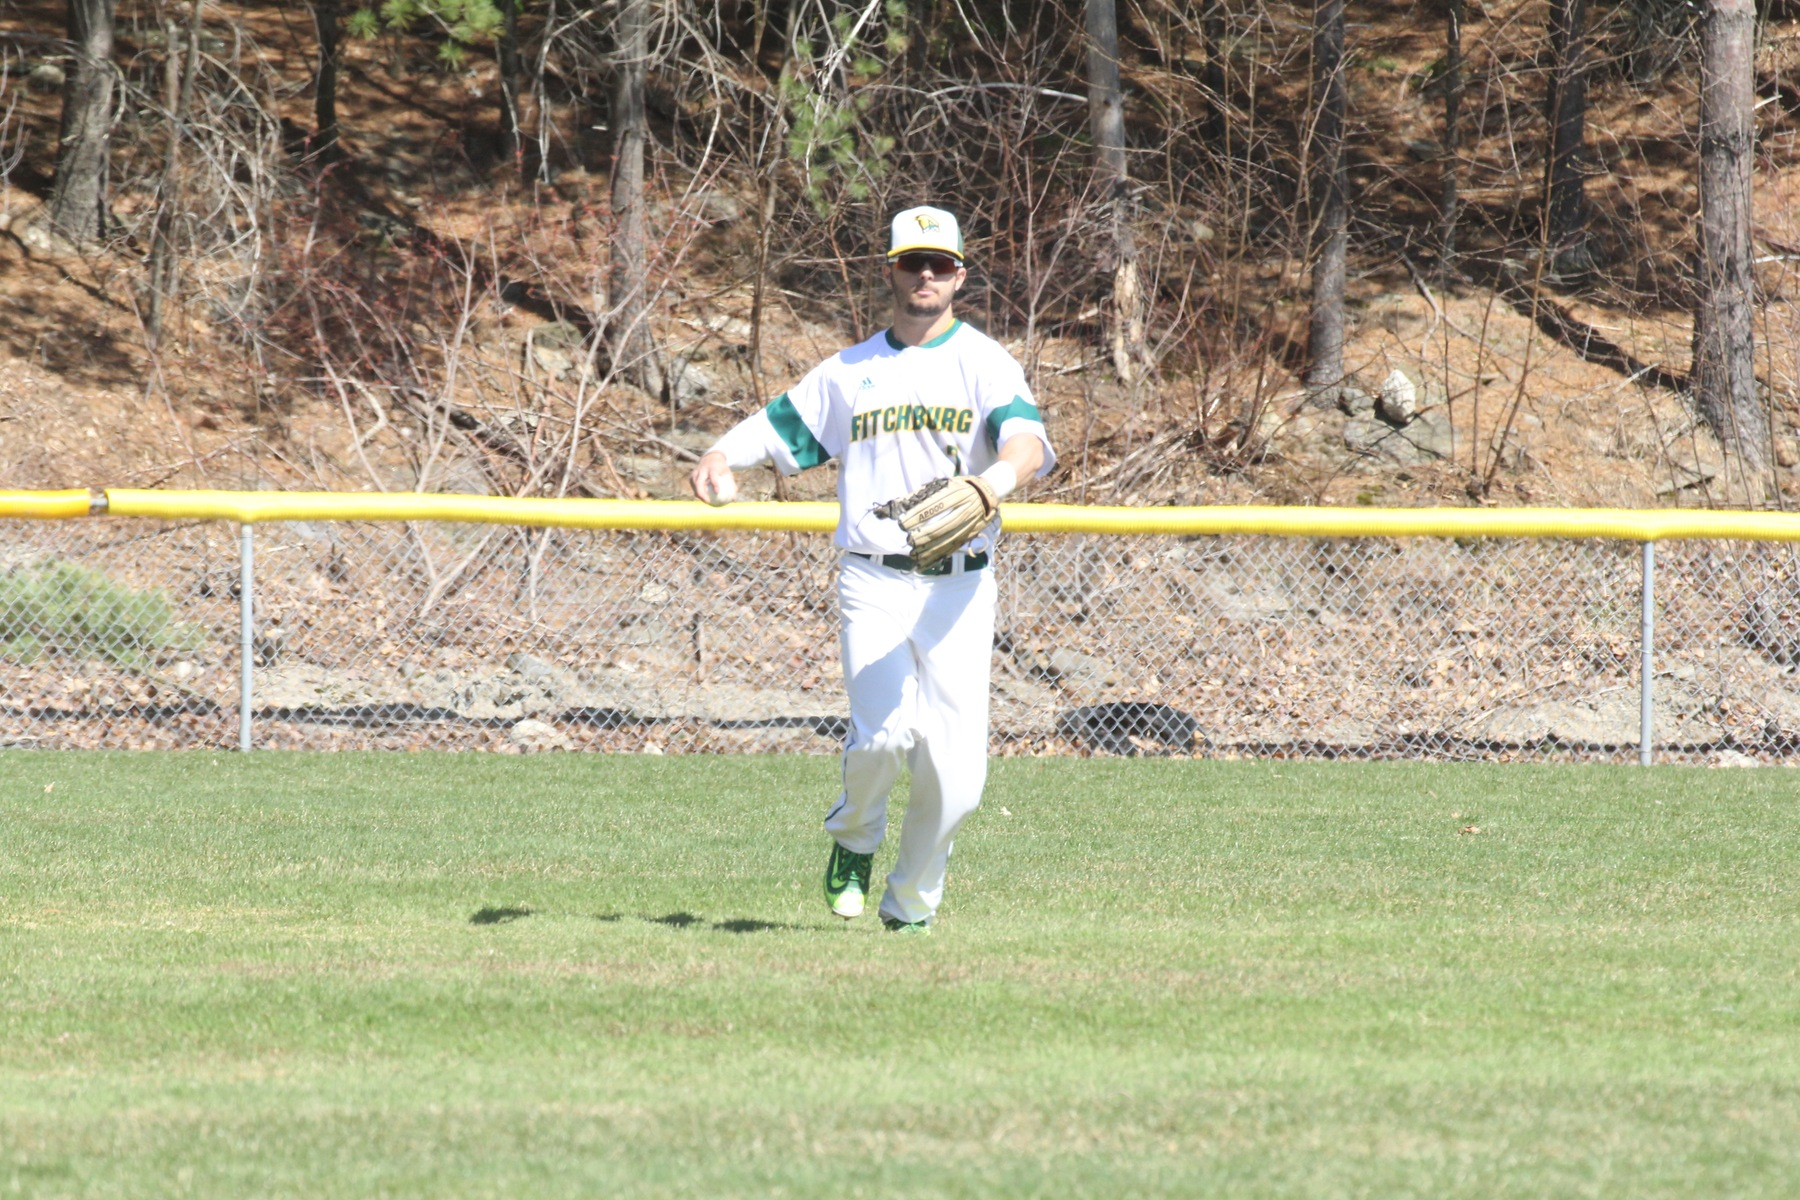 Fitchburg State Takes Two Against Bridgewater State